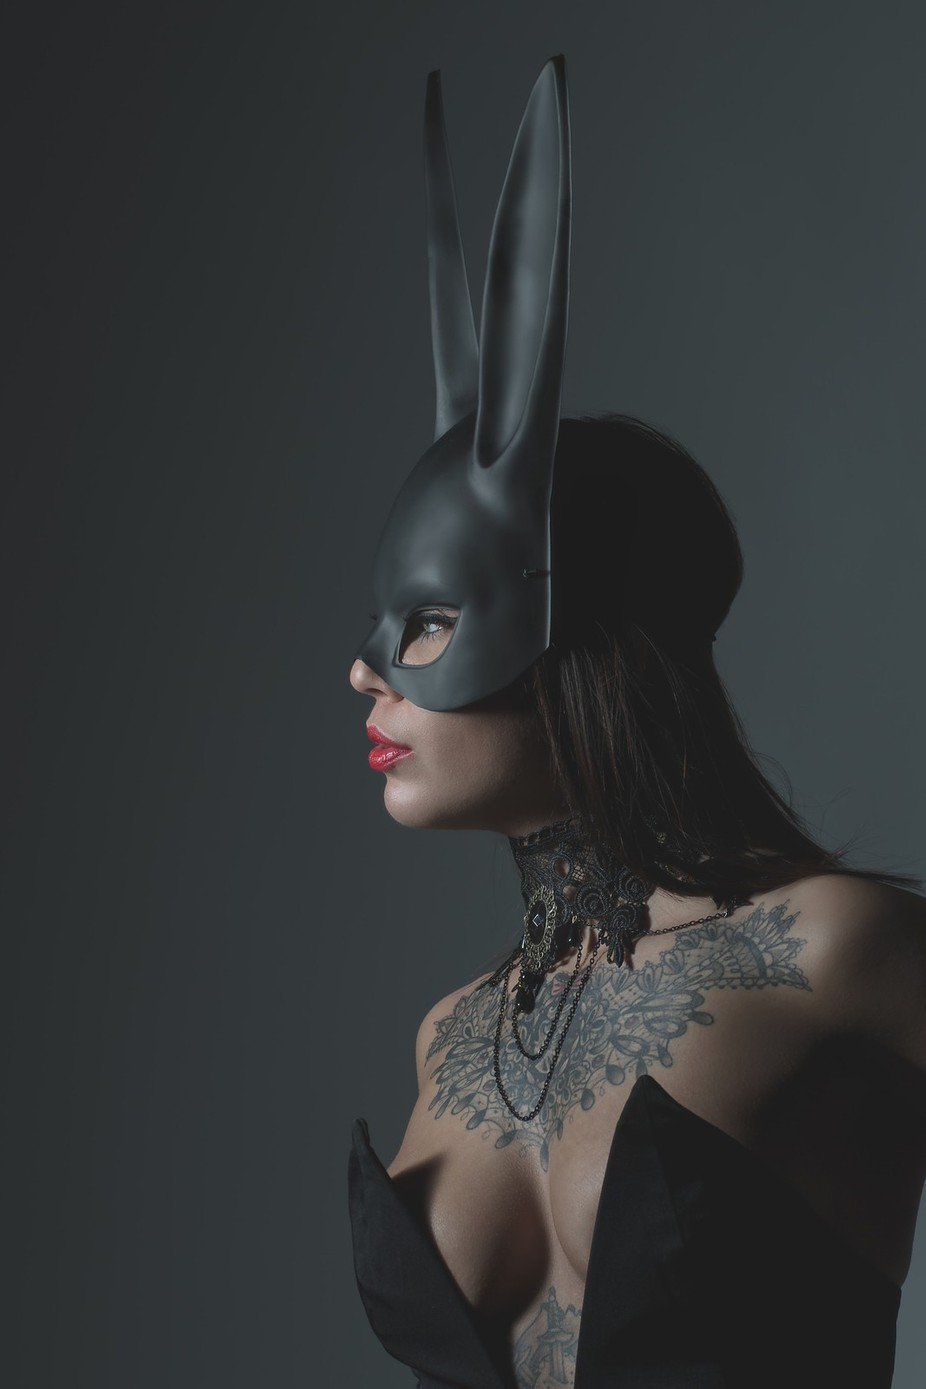 Burlesque Bunny by Rob_Lopshire - Mysterious Shots Photo Contest